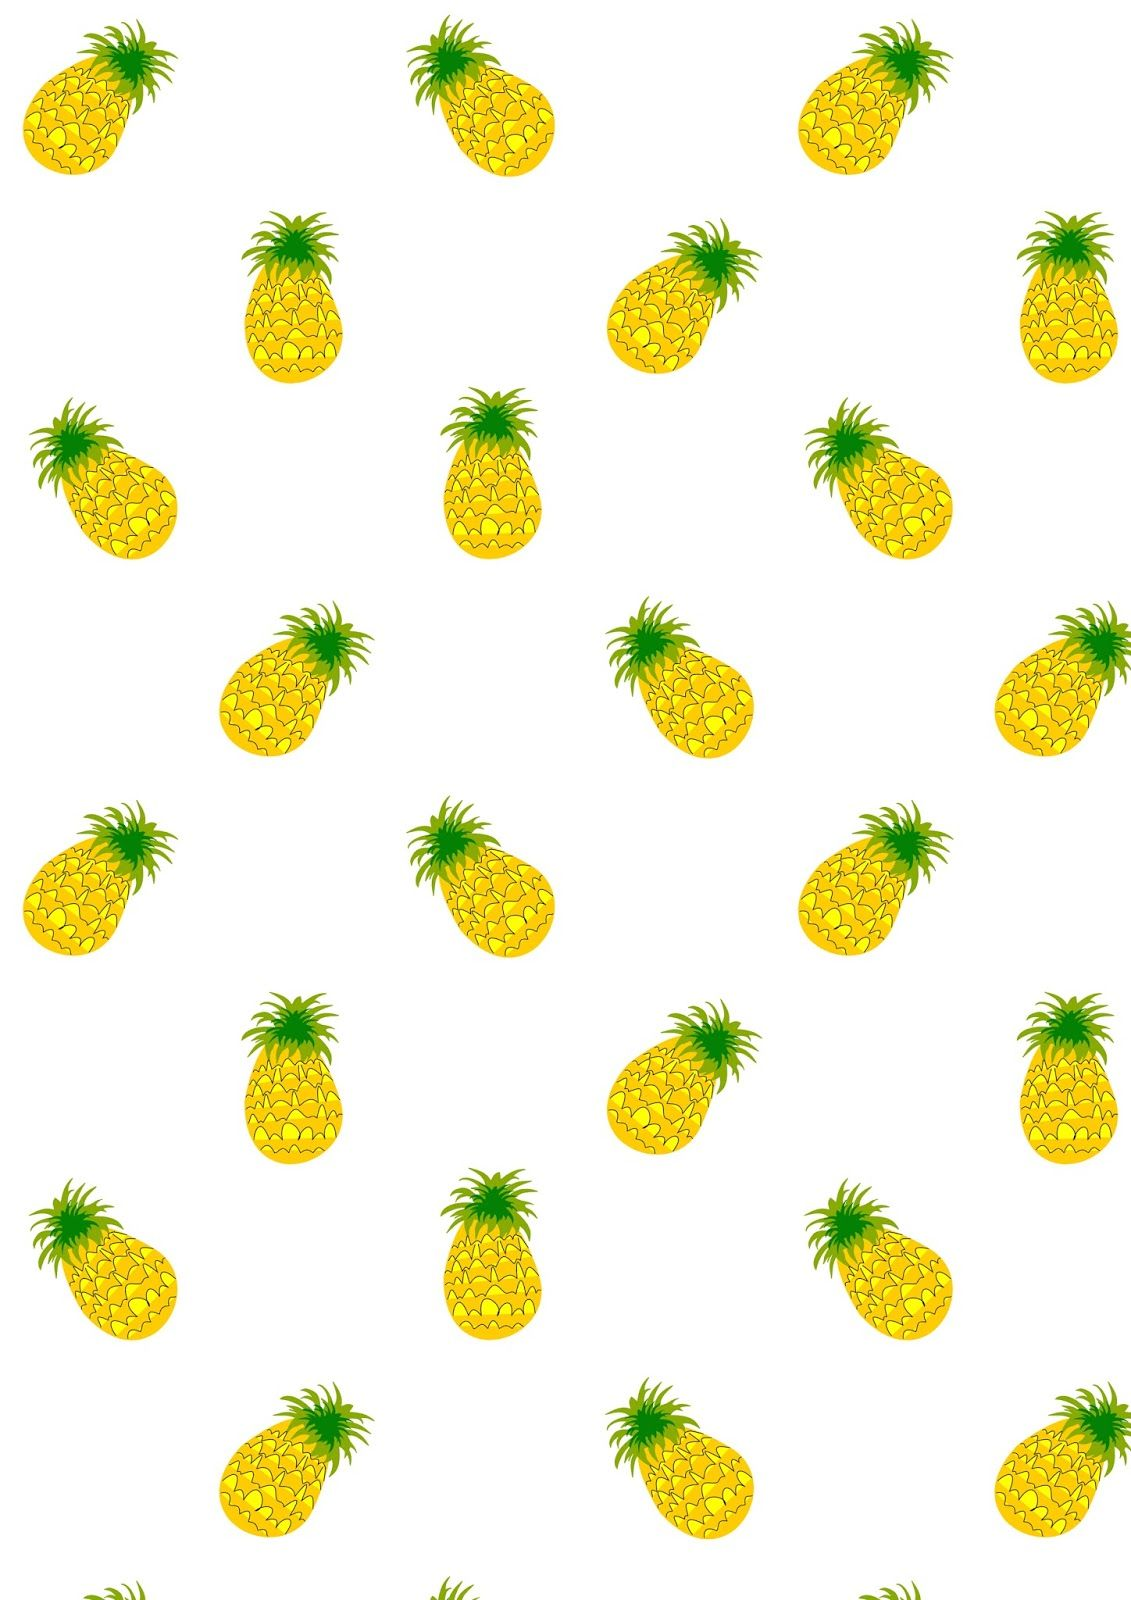 photograph regarding Pineapple Printable known as No cost printable pineapple routine paper #fruitysummer